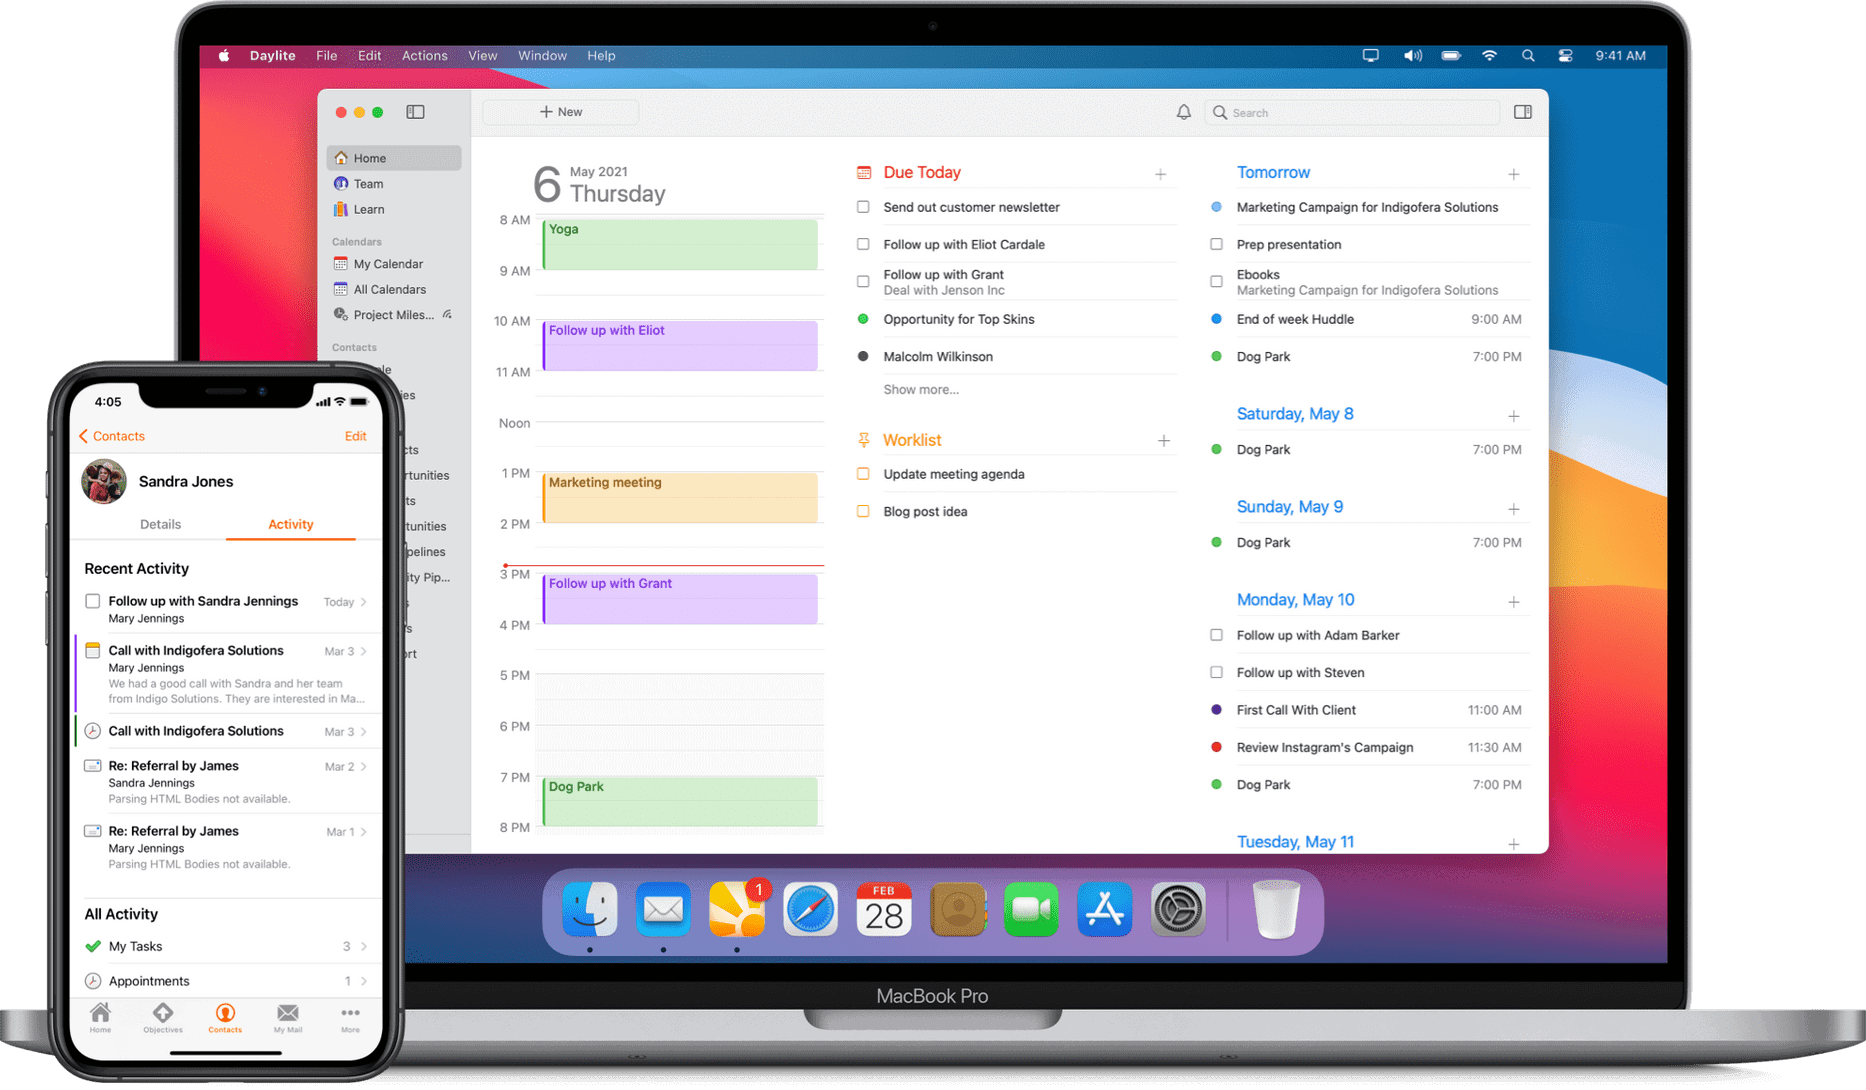 Daylite for Mac and iOS